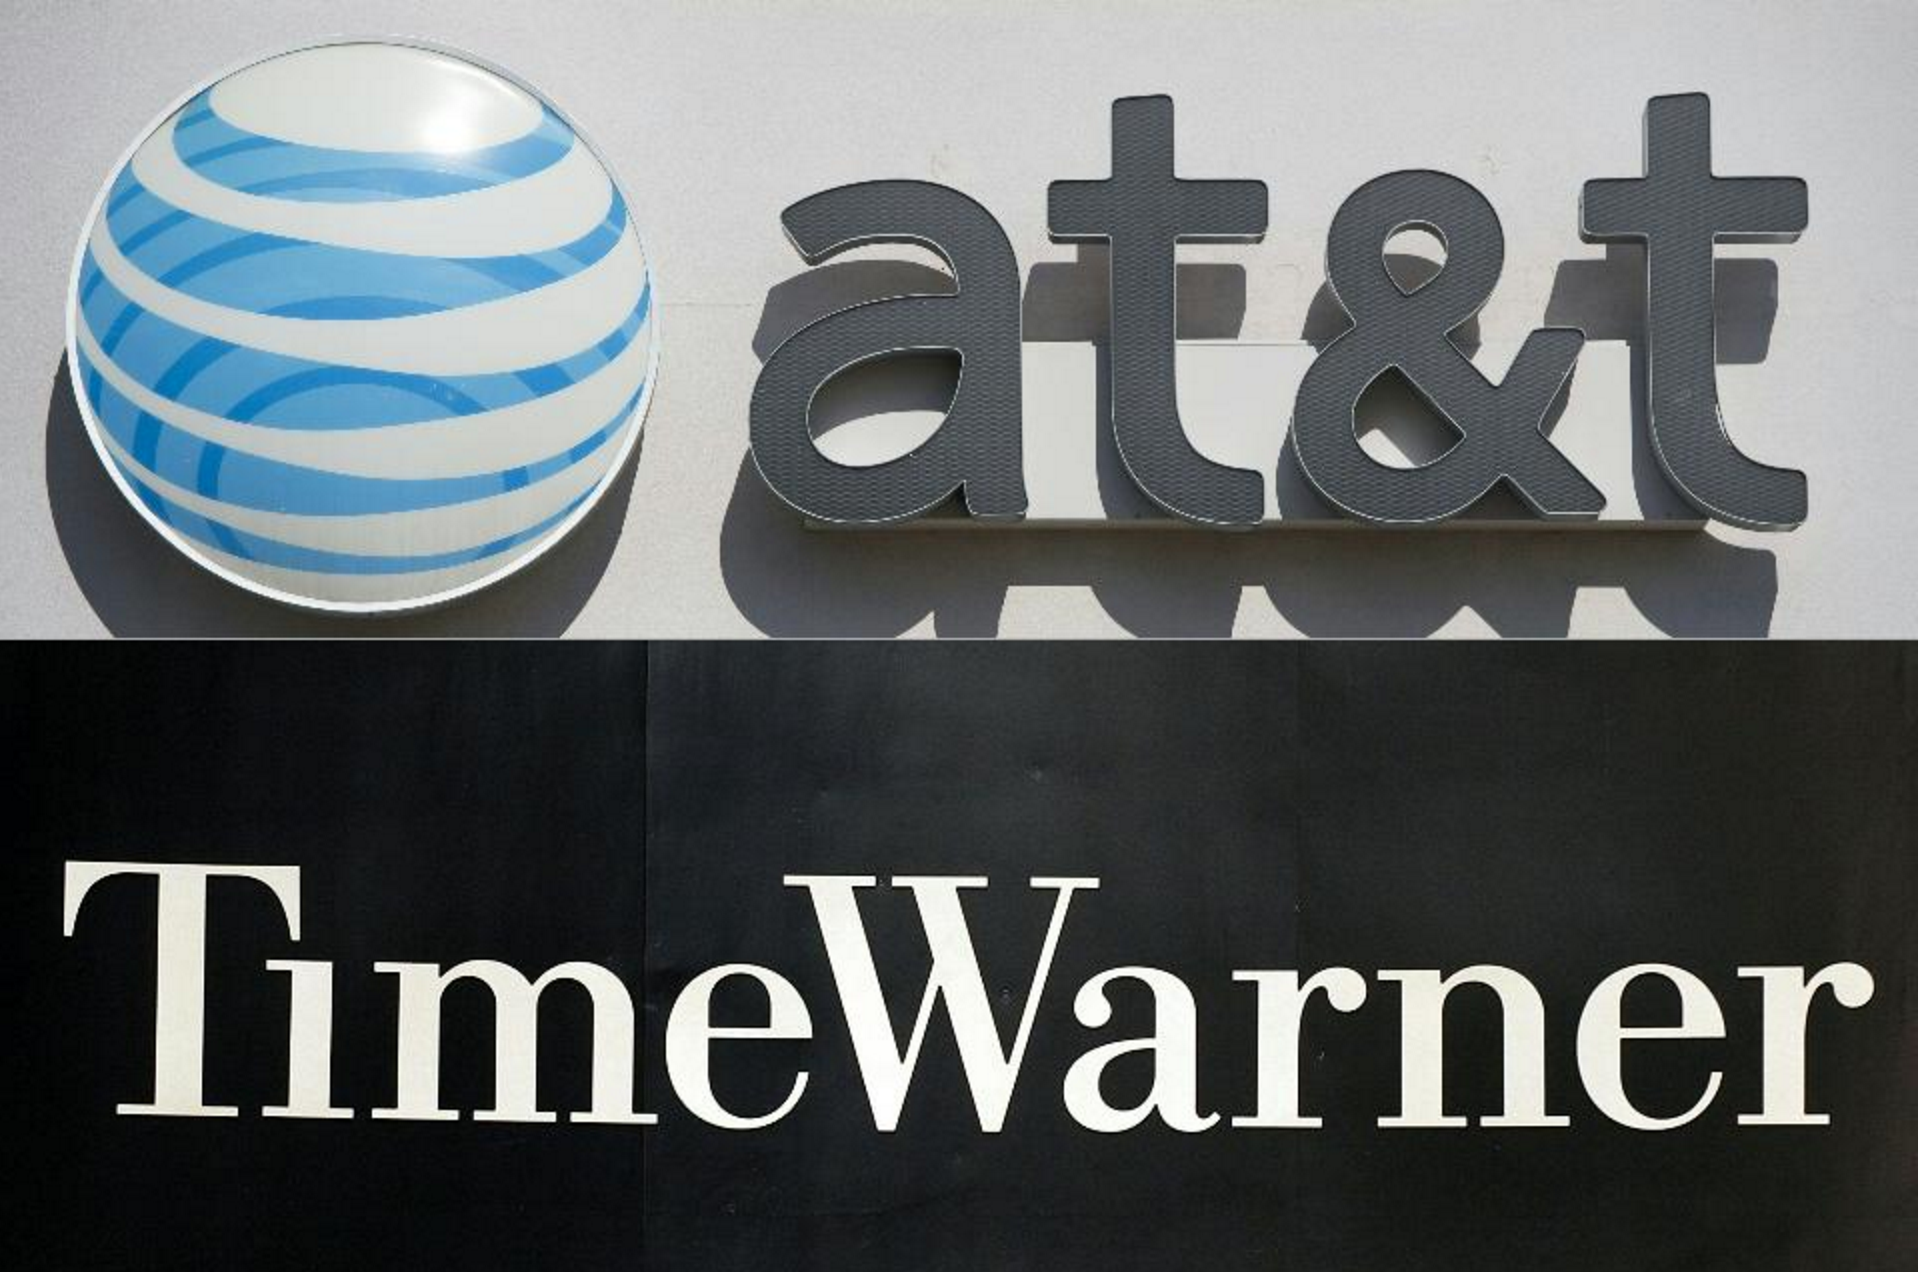 (COMBO) This combination of pictures created on October 21, 2016 shows AT&T cellphone store in Springfield, Virginia, on October 23, 2014. And the Time Warner company logo on the front of the headquarter building, 24 November, 2003, in New York.  (Photo credit:SAUL LOEB,STAN HONDA/AFP/Getty Images)